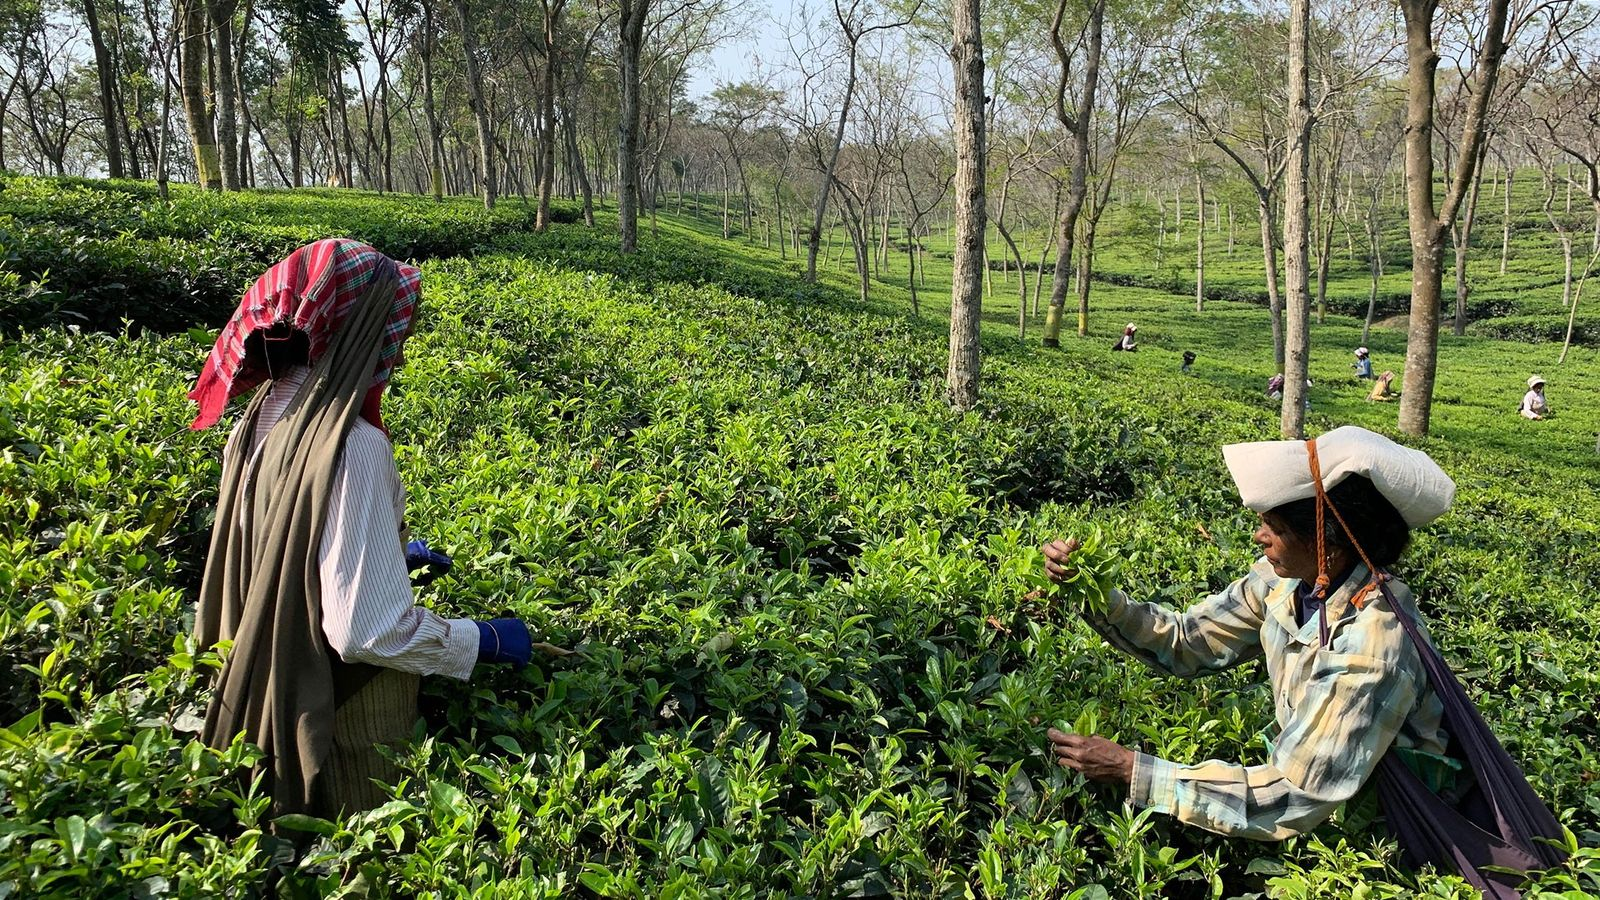 On tea plantations in West Bengal, women tea pickers are often preferred because of their reliability ...